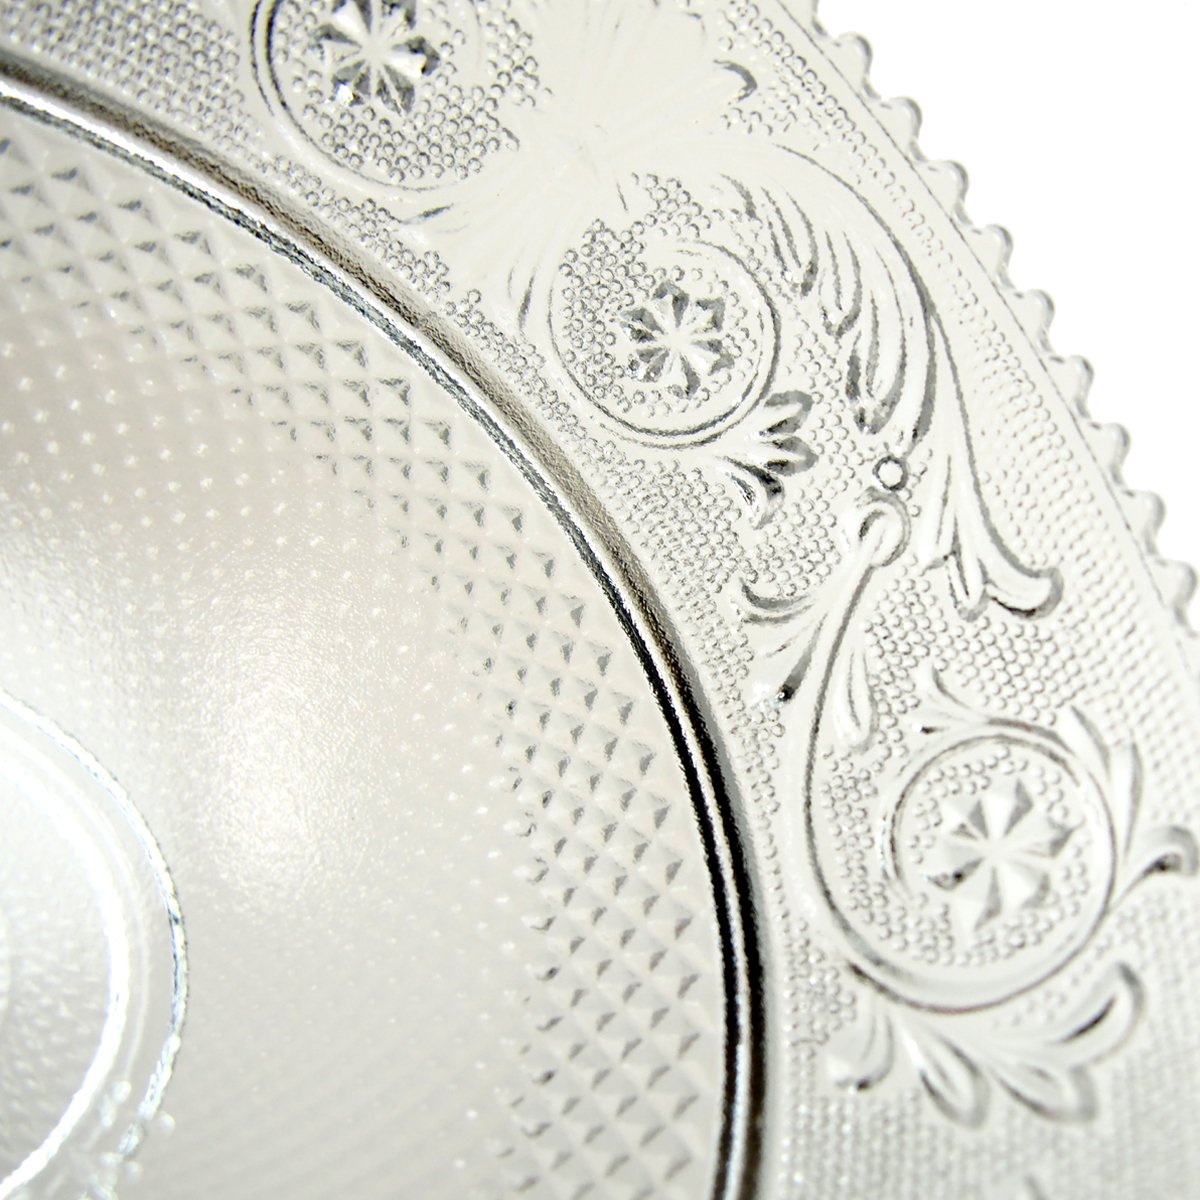 Baccarat Baccarat Arabesque Arabesque bowl dish 2103573 [ parallel import goods ] by BACCART ( Baccarat ) (Image #4)